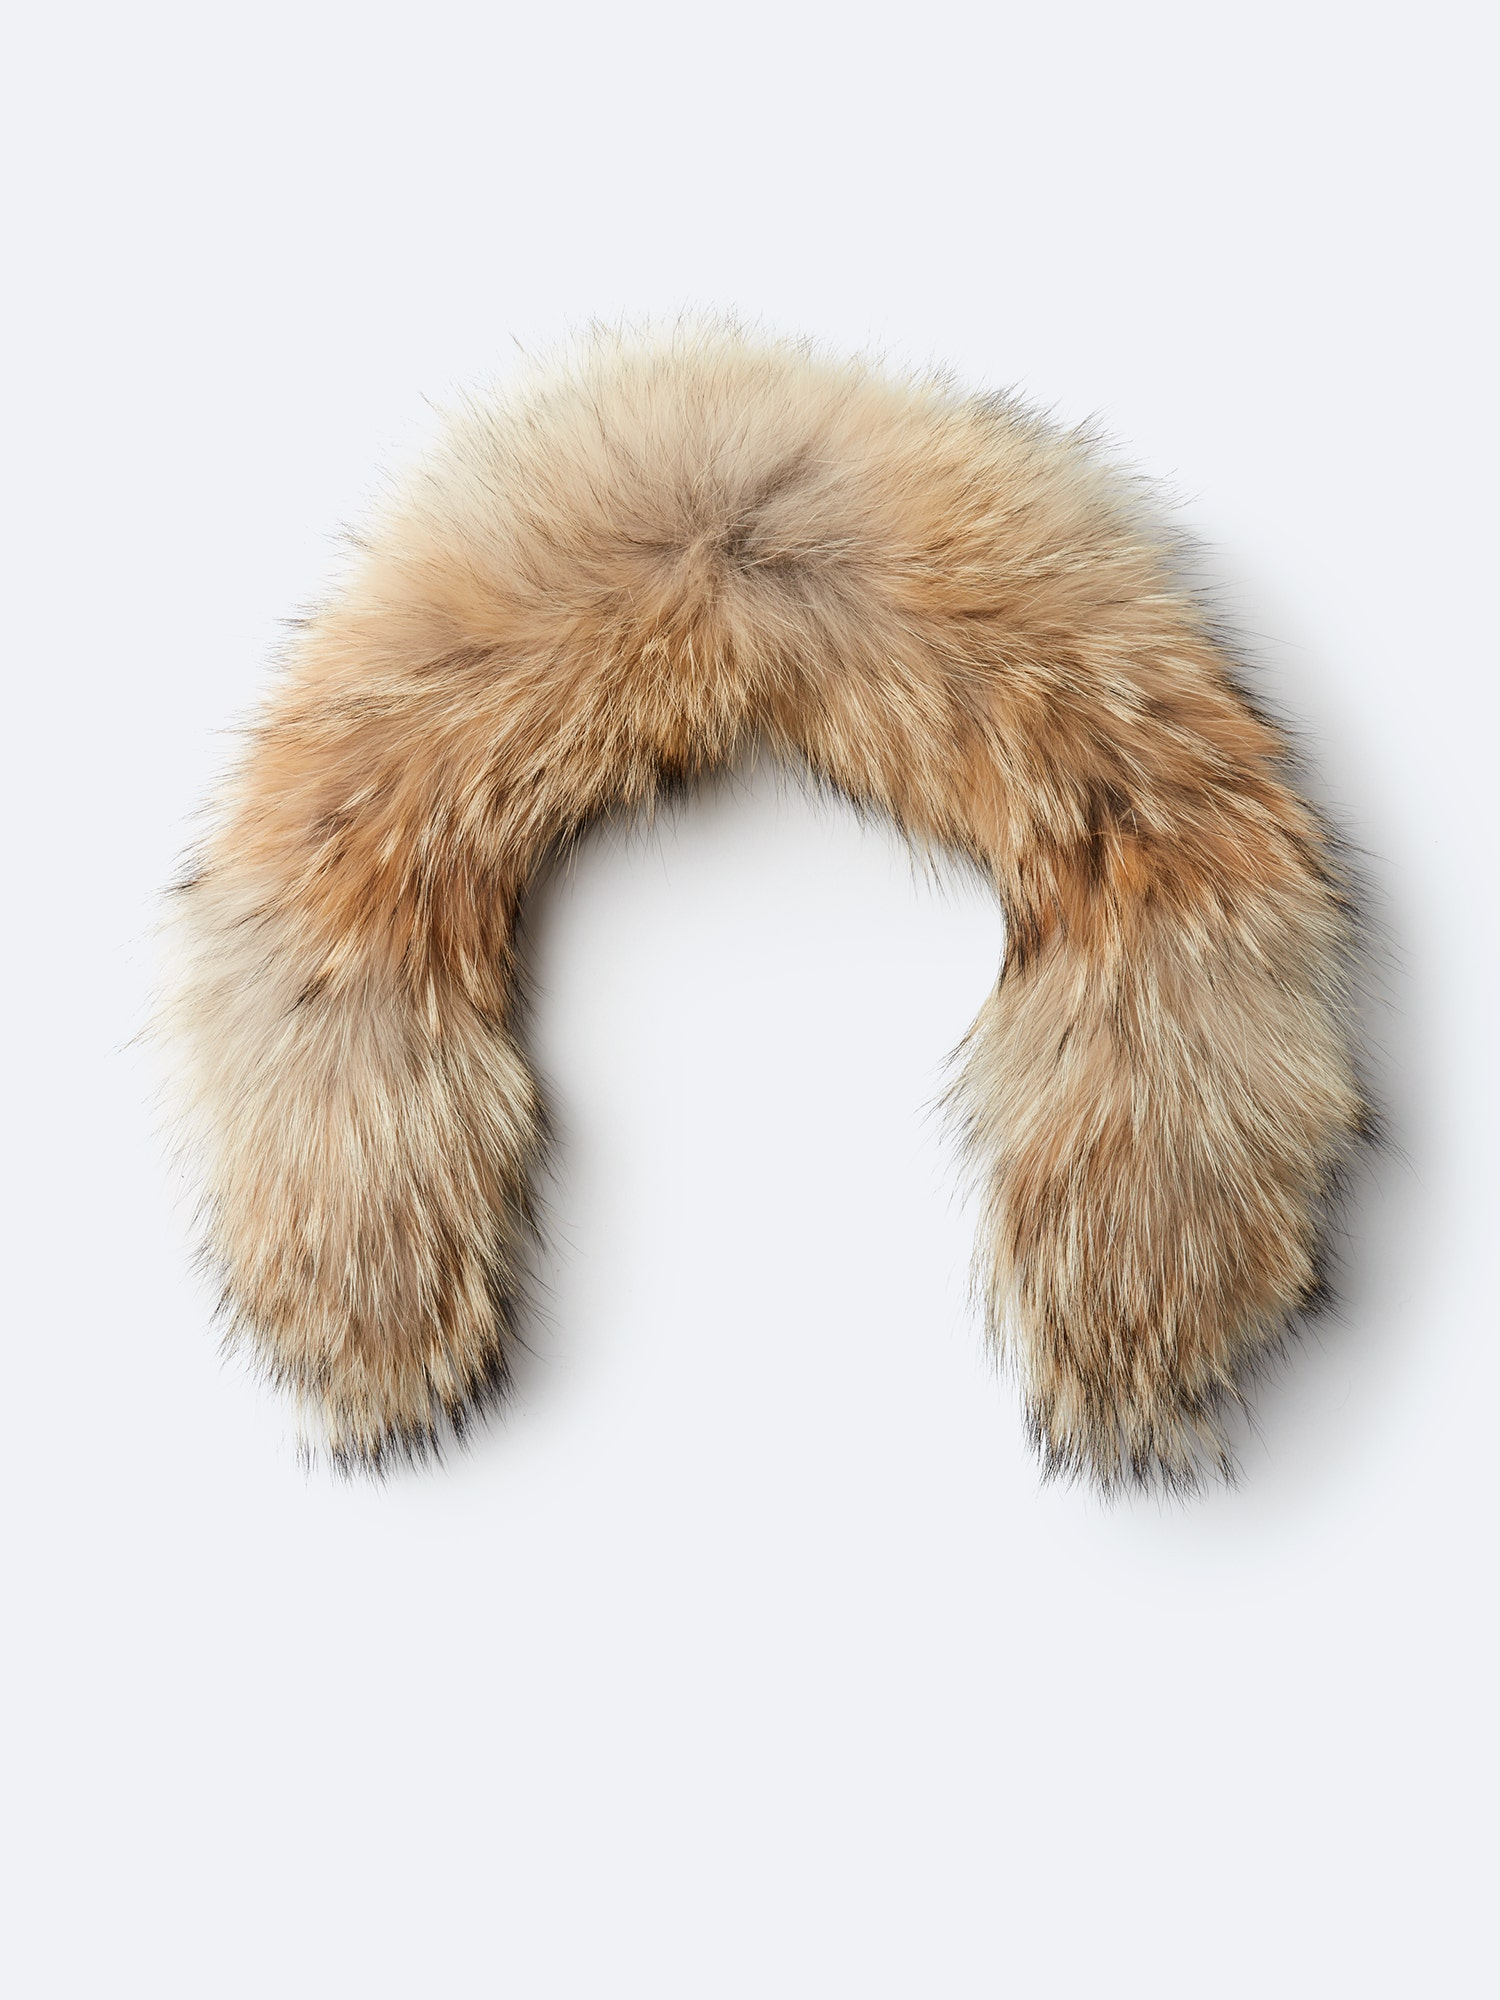 Fur gold 23 inches